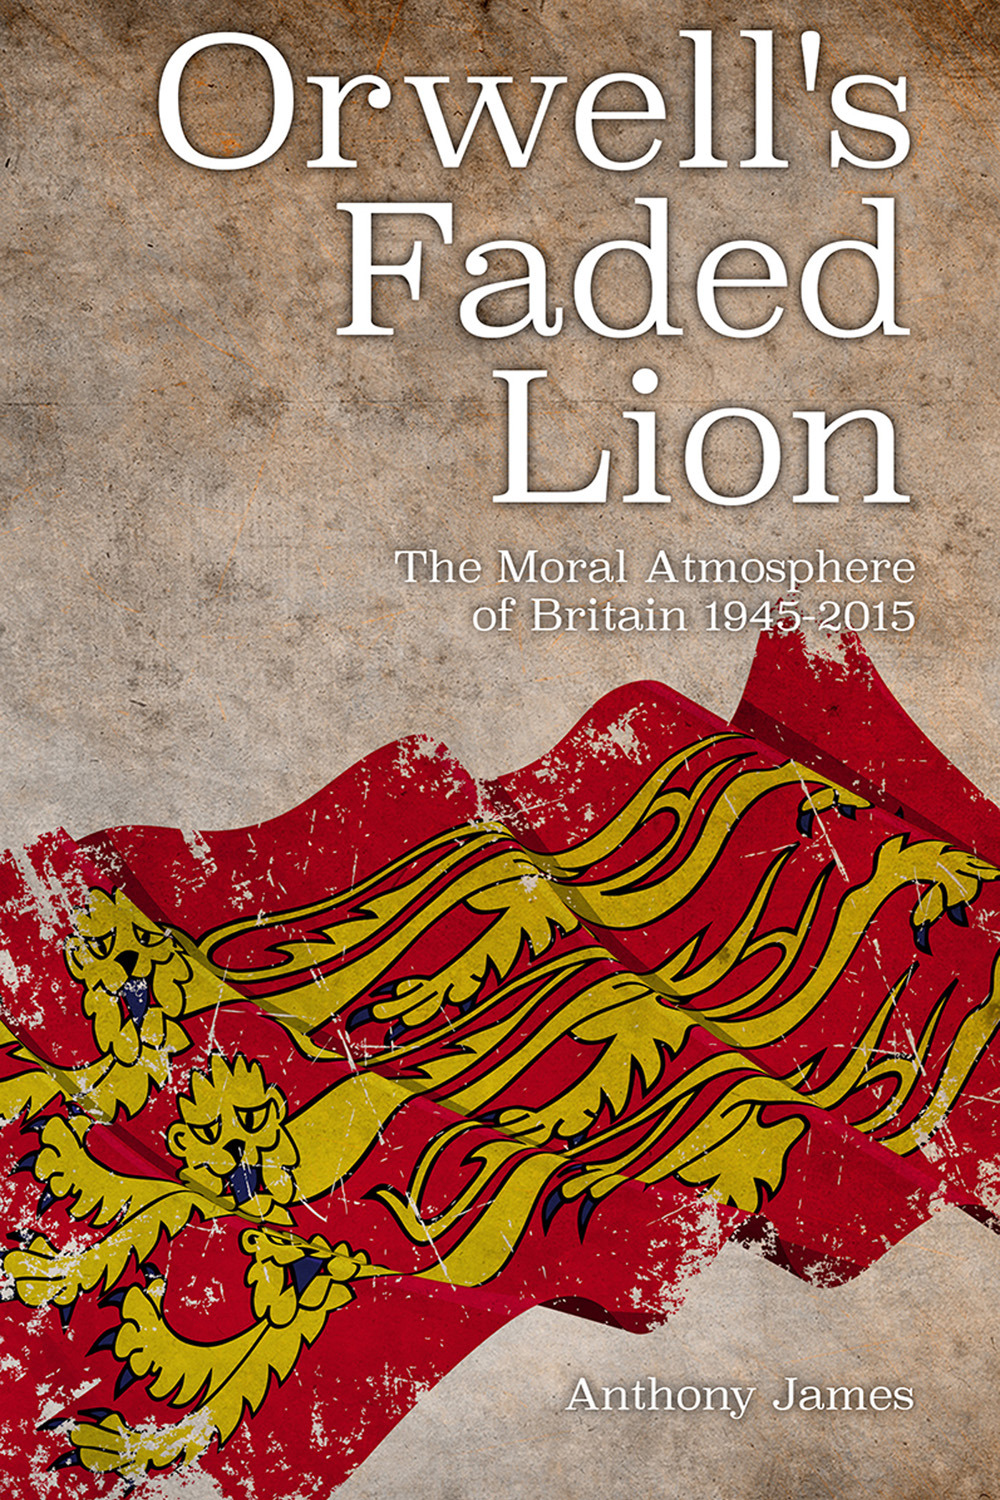 James, Anthony - Orwell's Faded Lion, ebook